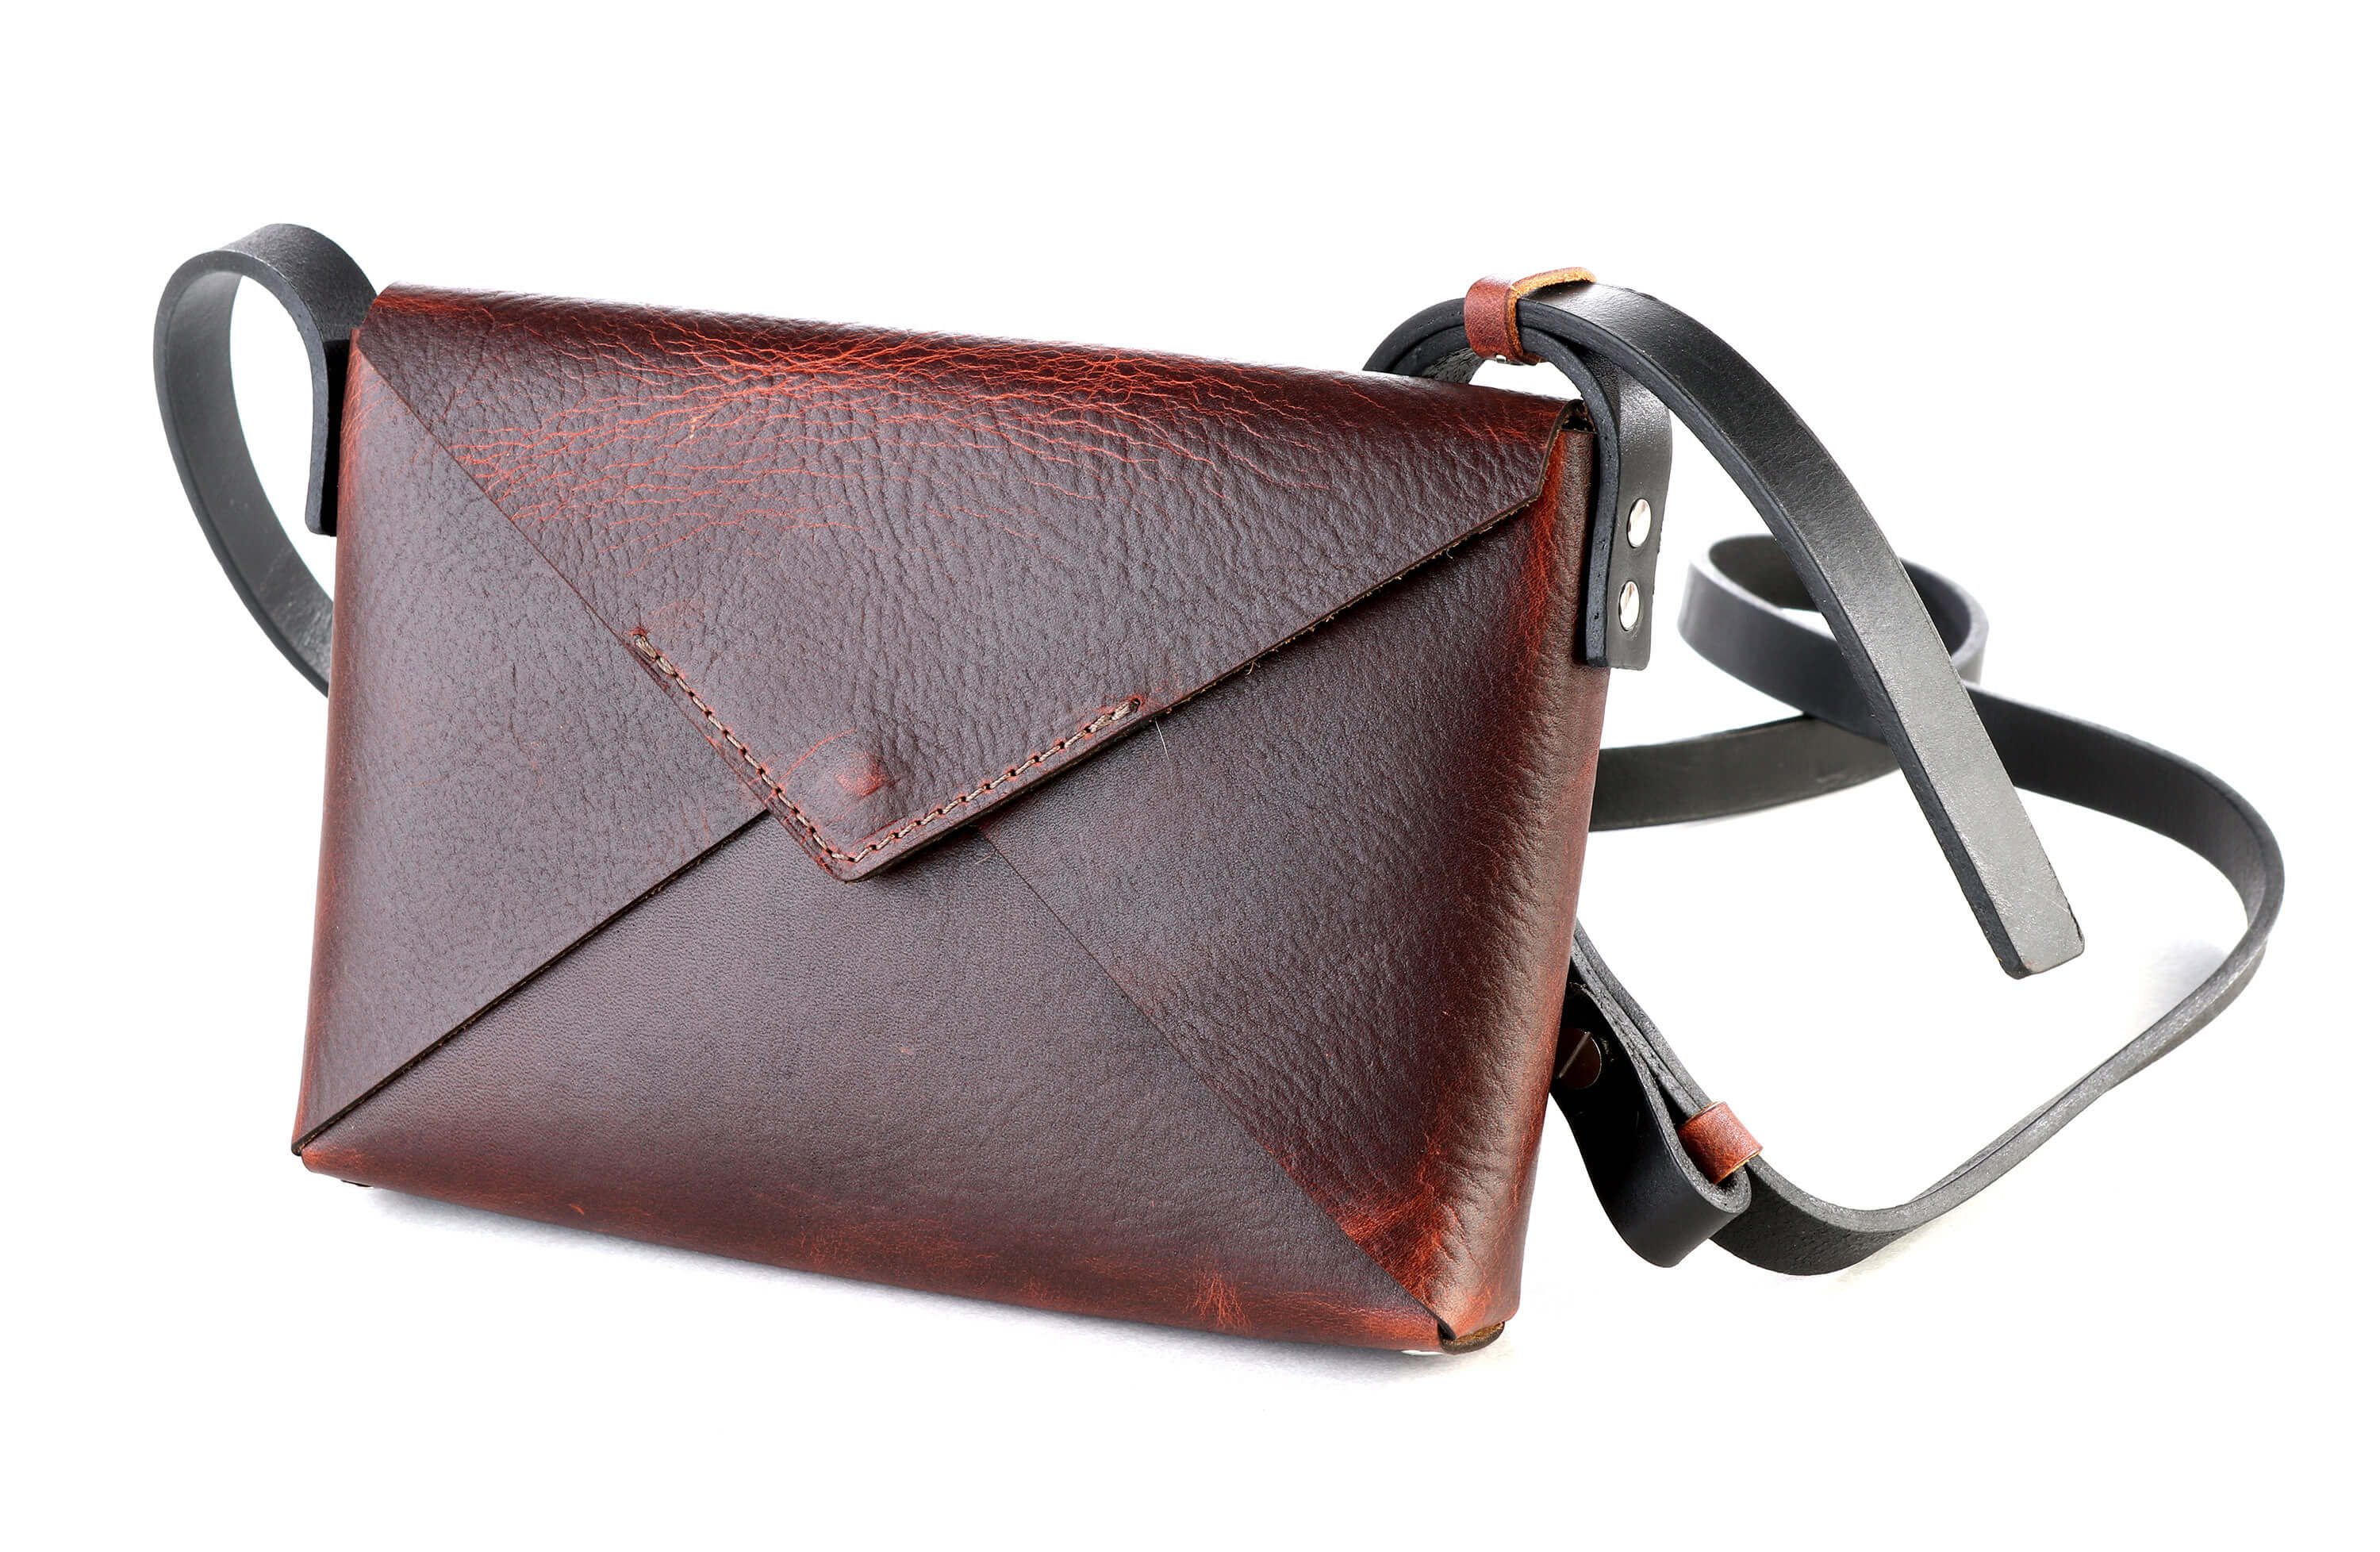 Leather Envelope Purse  4bd8942555f17